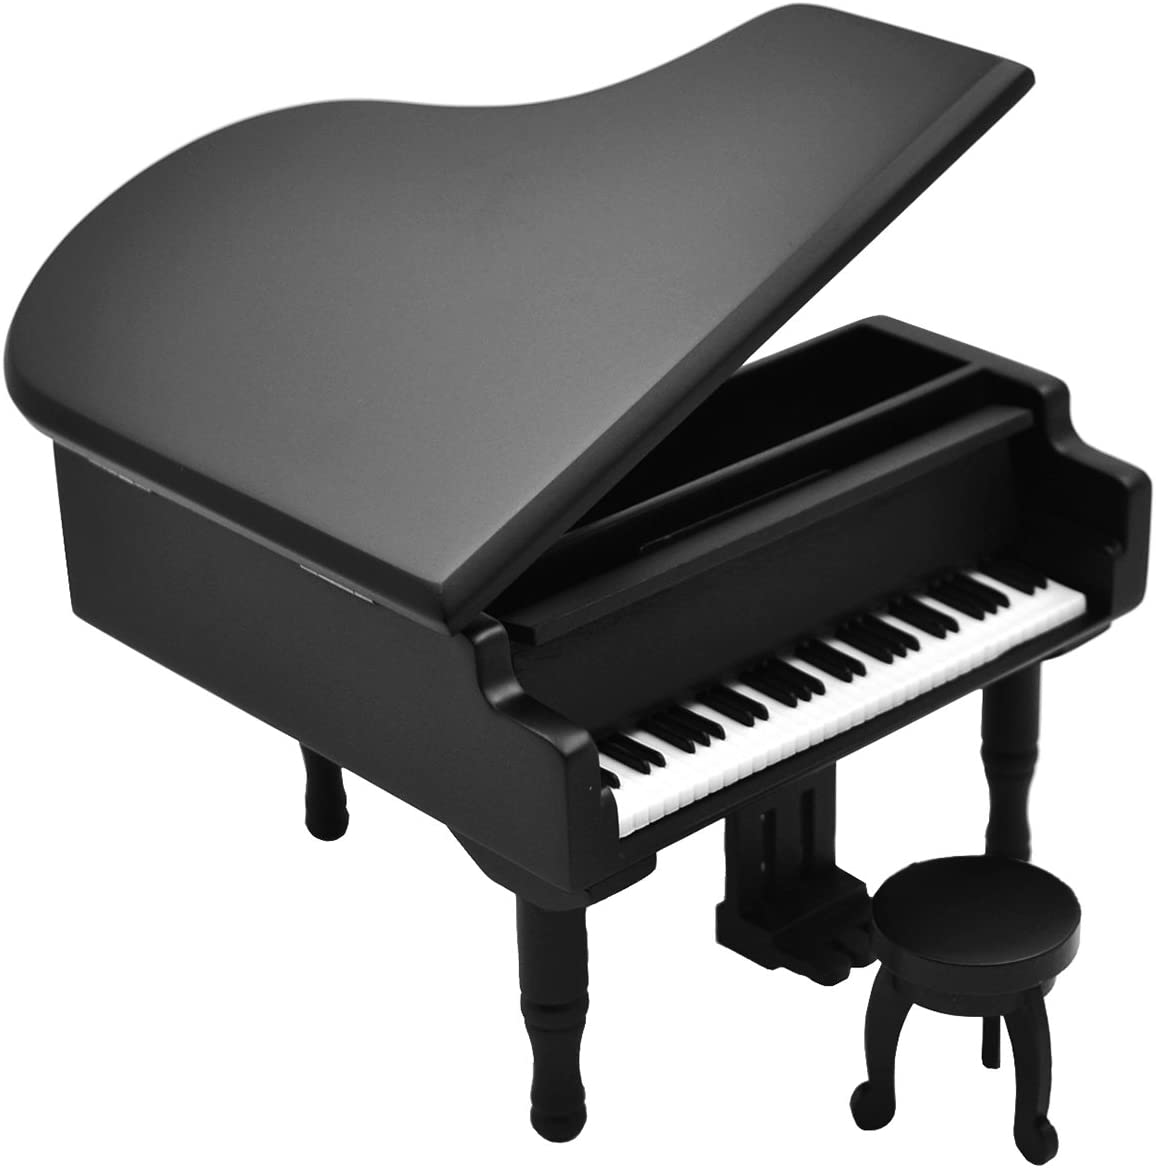 Piano Model Music Box for Music lover Christmas gift (Black-Piano)